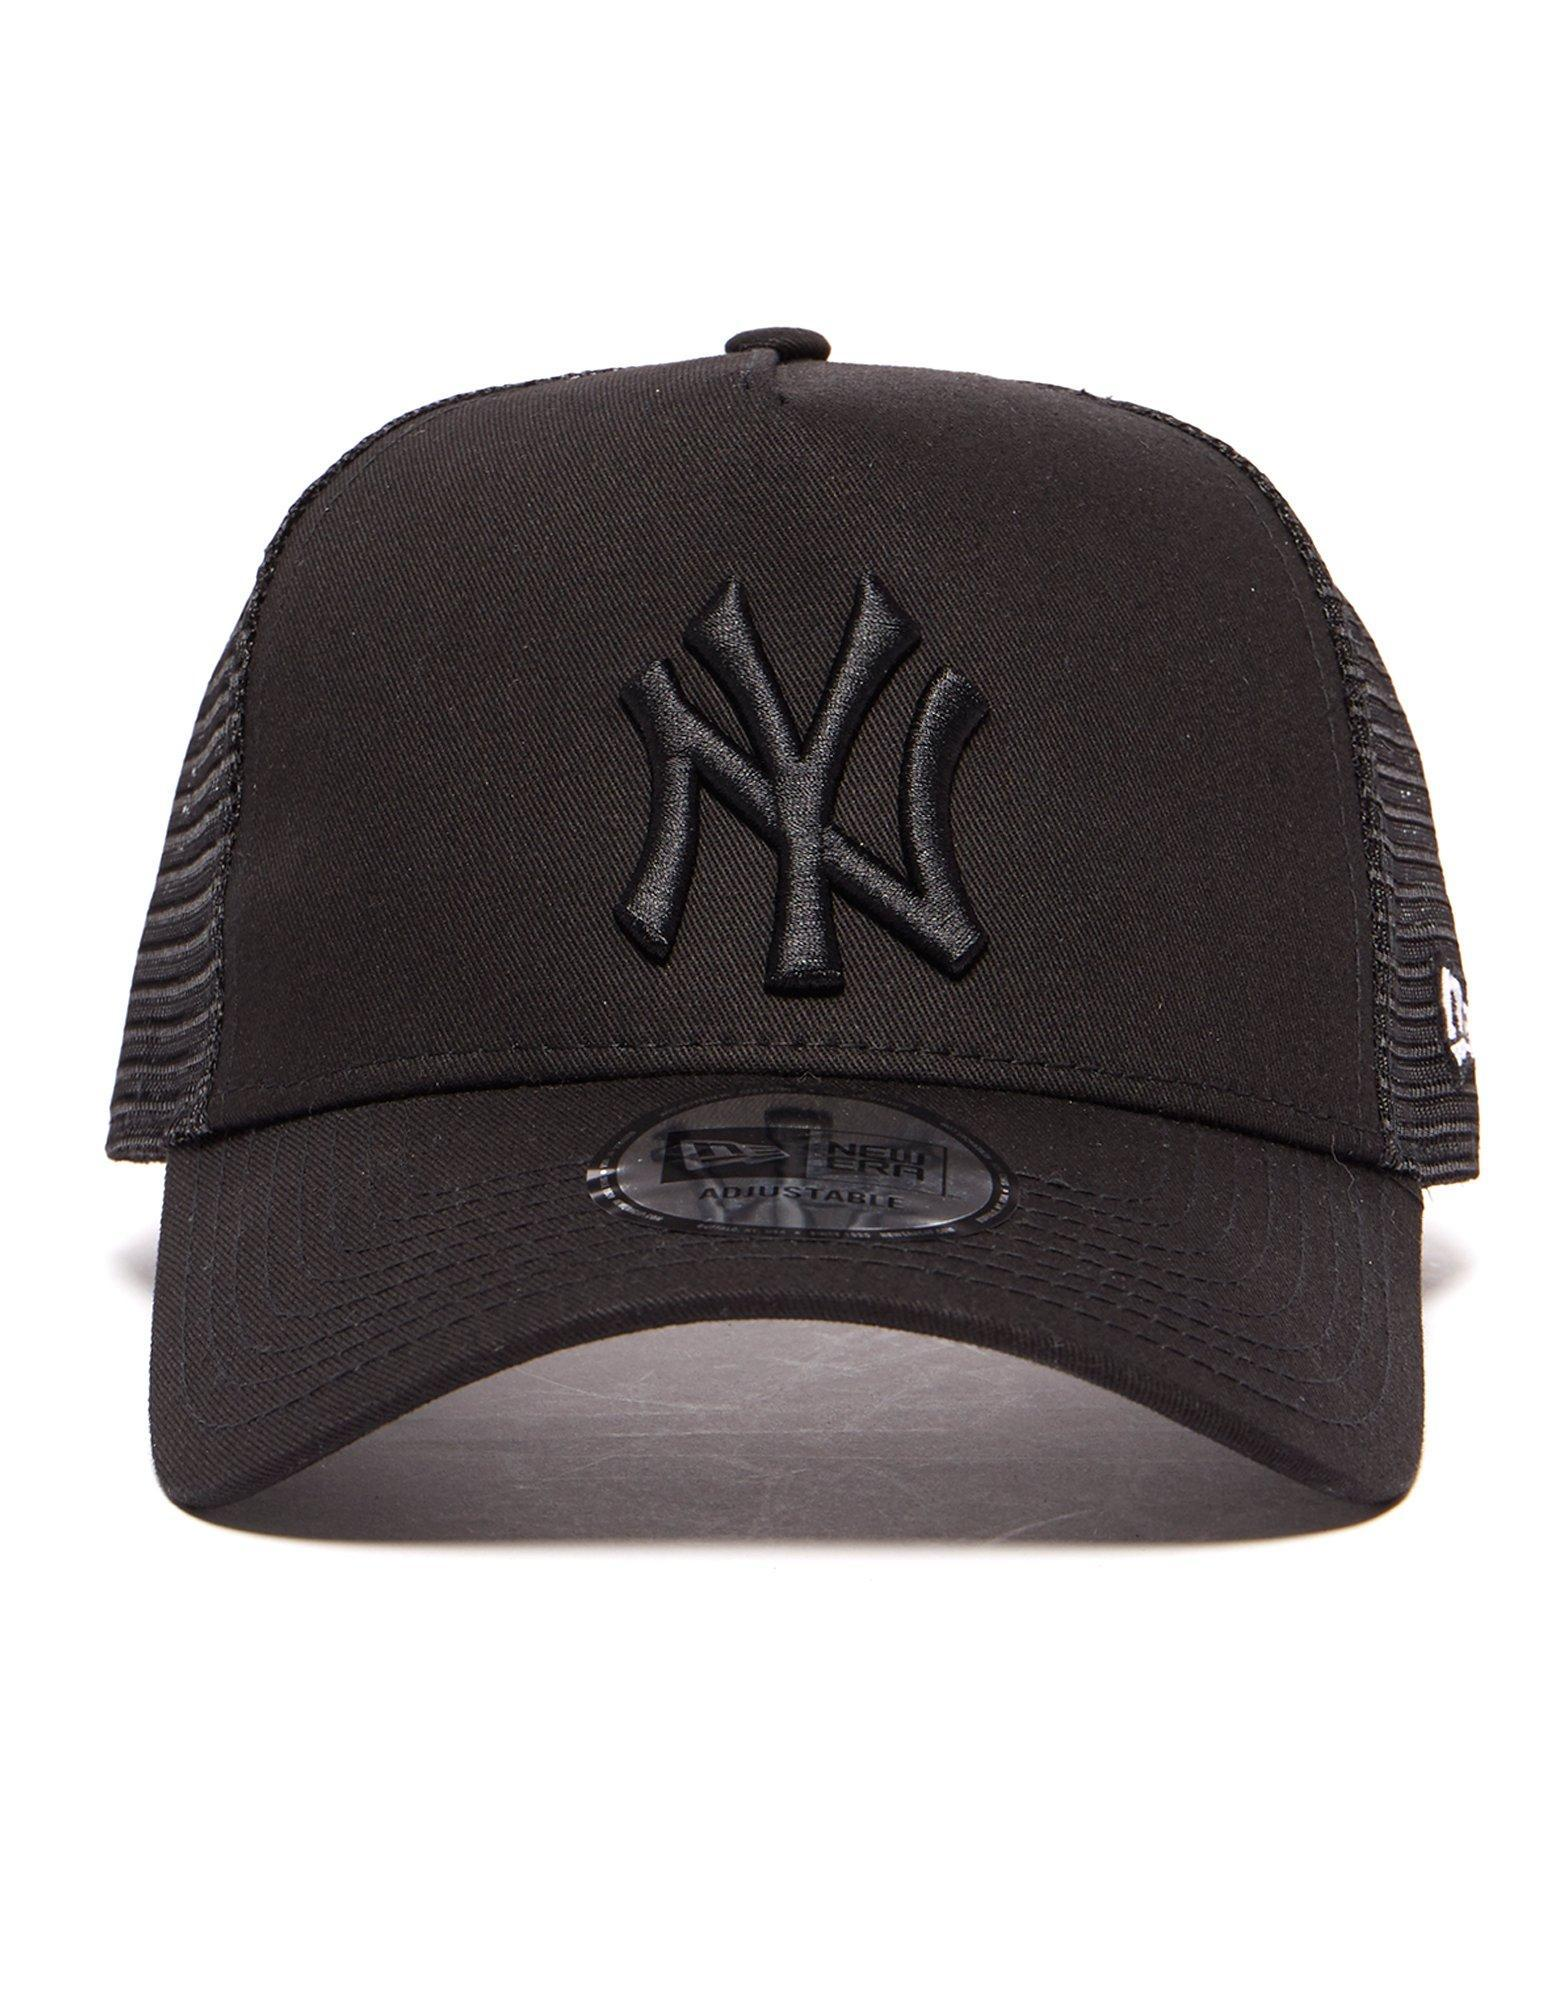 40c27b80cd8 ... buy ktz black mlb new york yankees snapback trucker cap lyst. view  fullscreen ccd4c 498b9